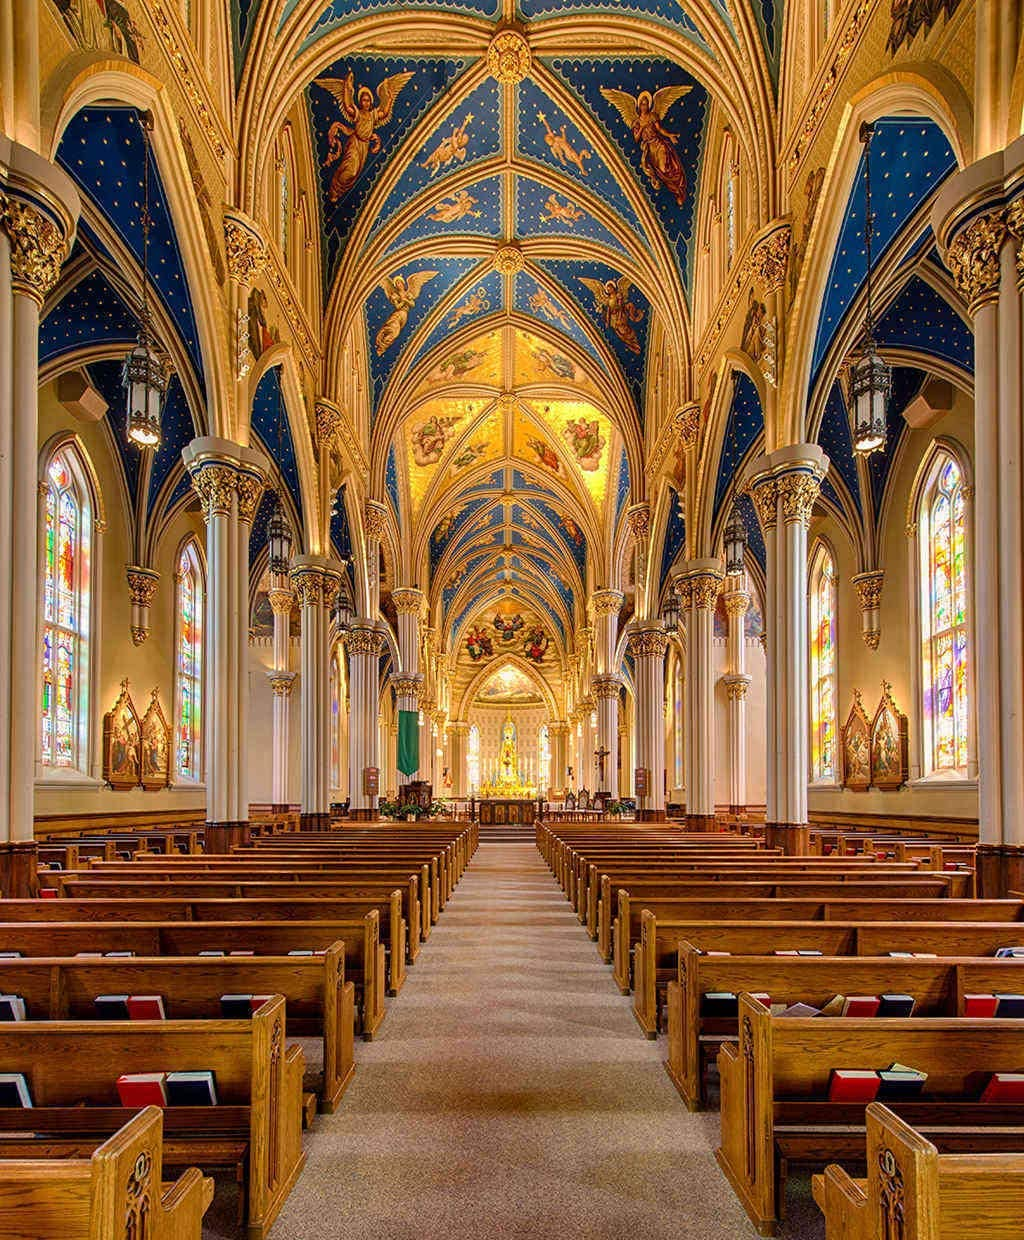 Eaiizer Poster Basilica Sacred Heart Campus University Notre Dame South Bend Indiana Wall Art Print Artwork for Home Bedroom Office Dorm Decor Unframed Painting 24x36 Inches